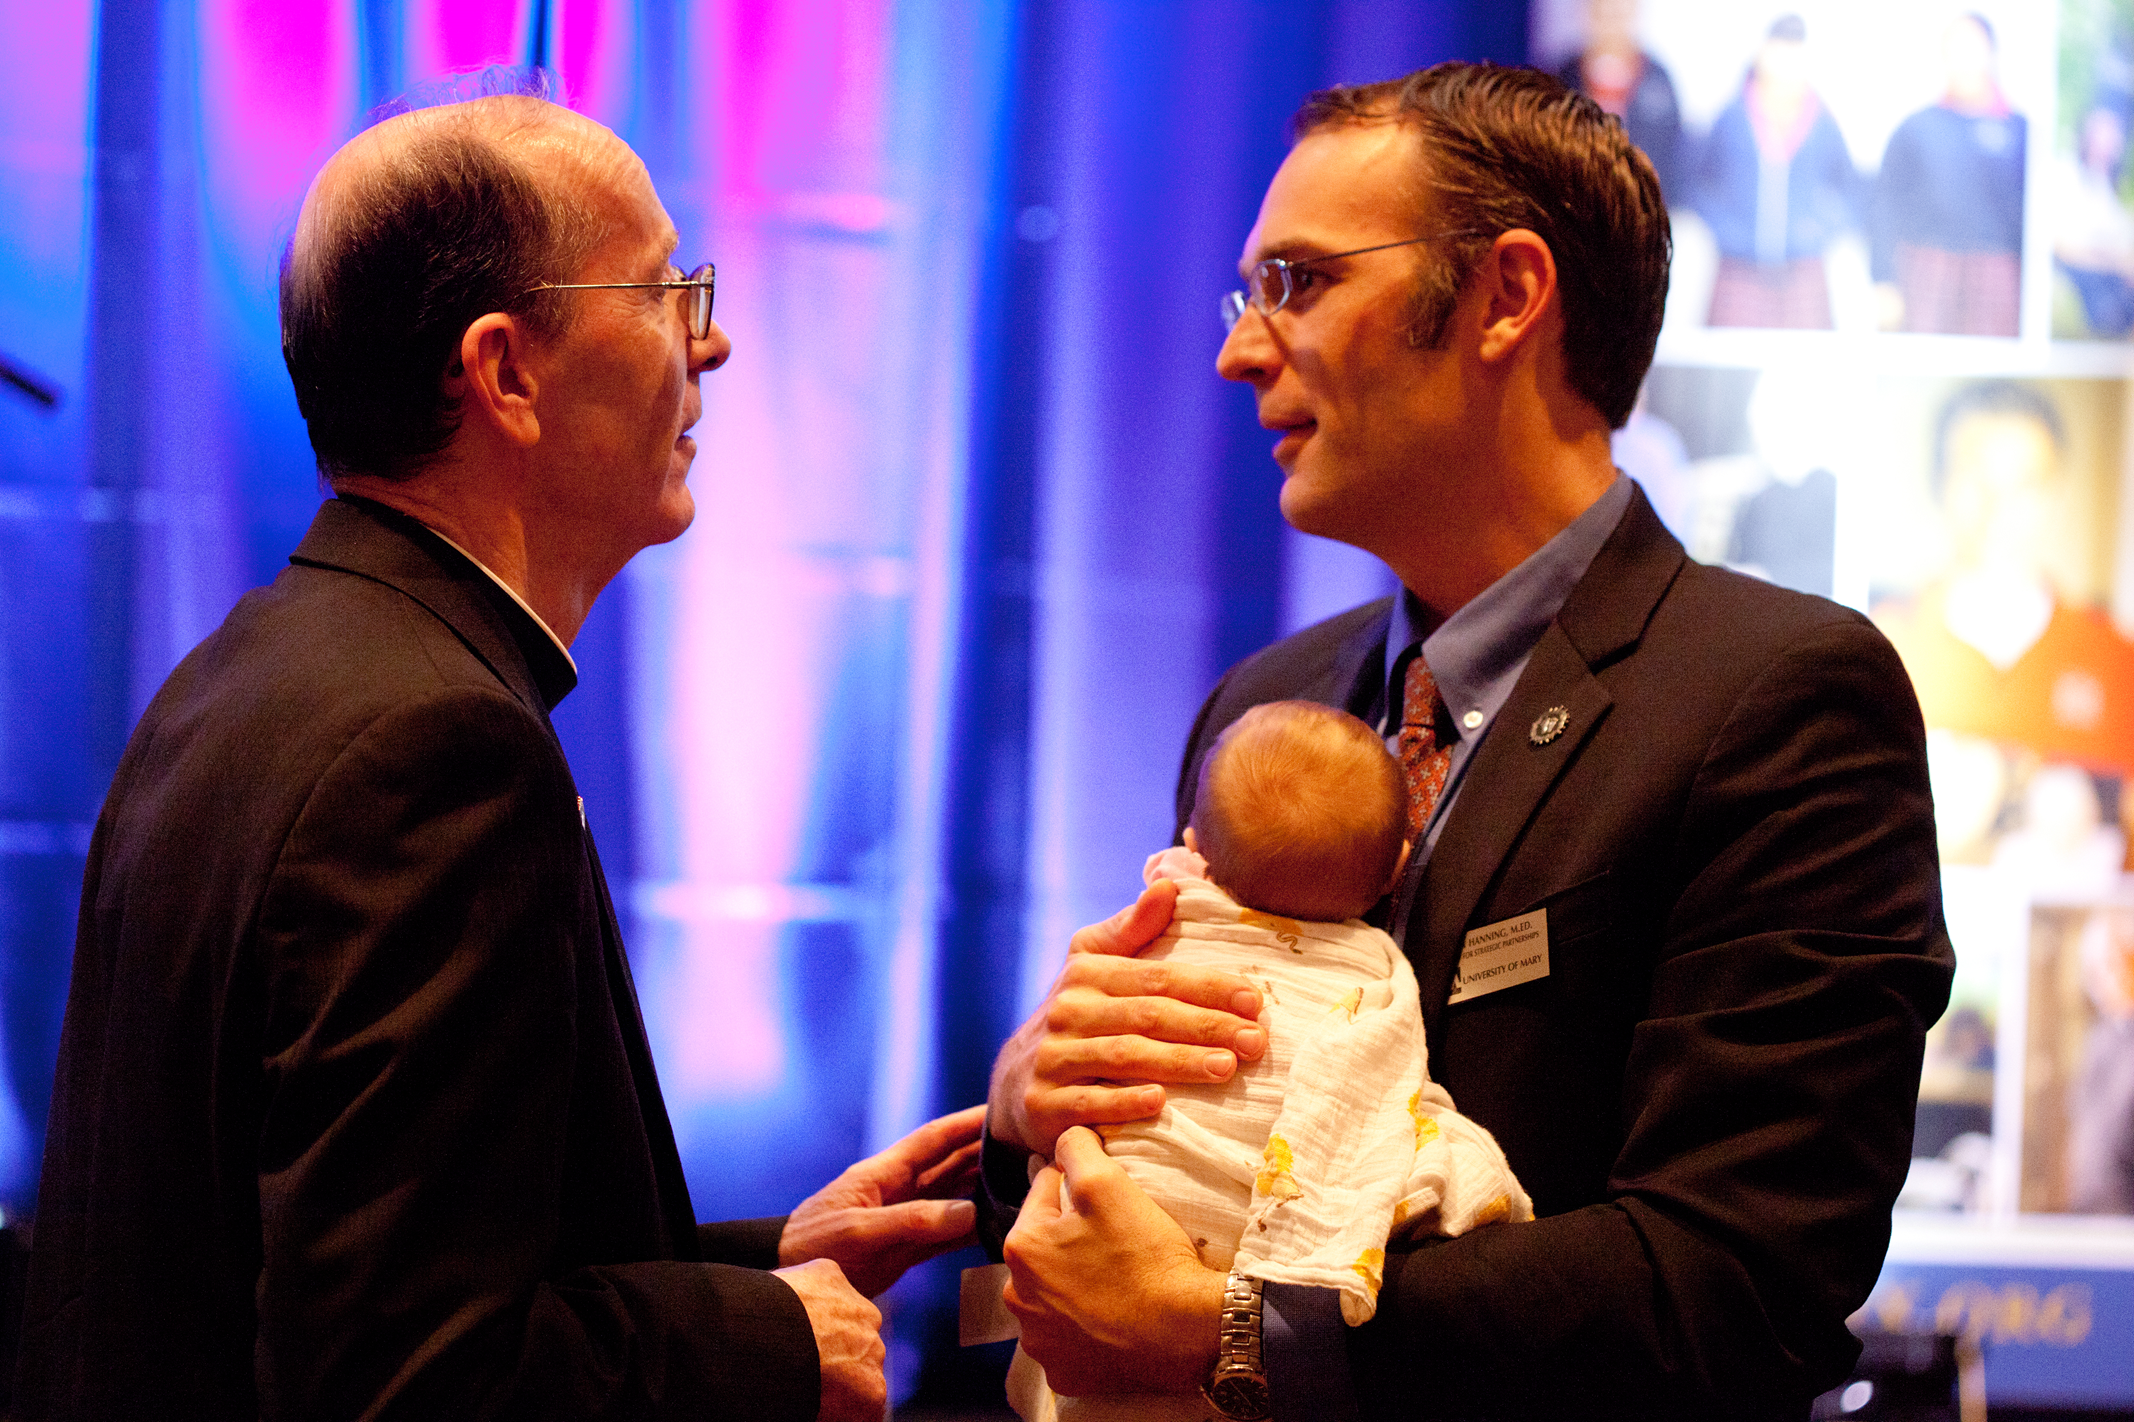 Dr. Hanning, Bs. Olmsted and newborn Therese, at 2015 State of Diocese Address.